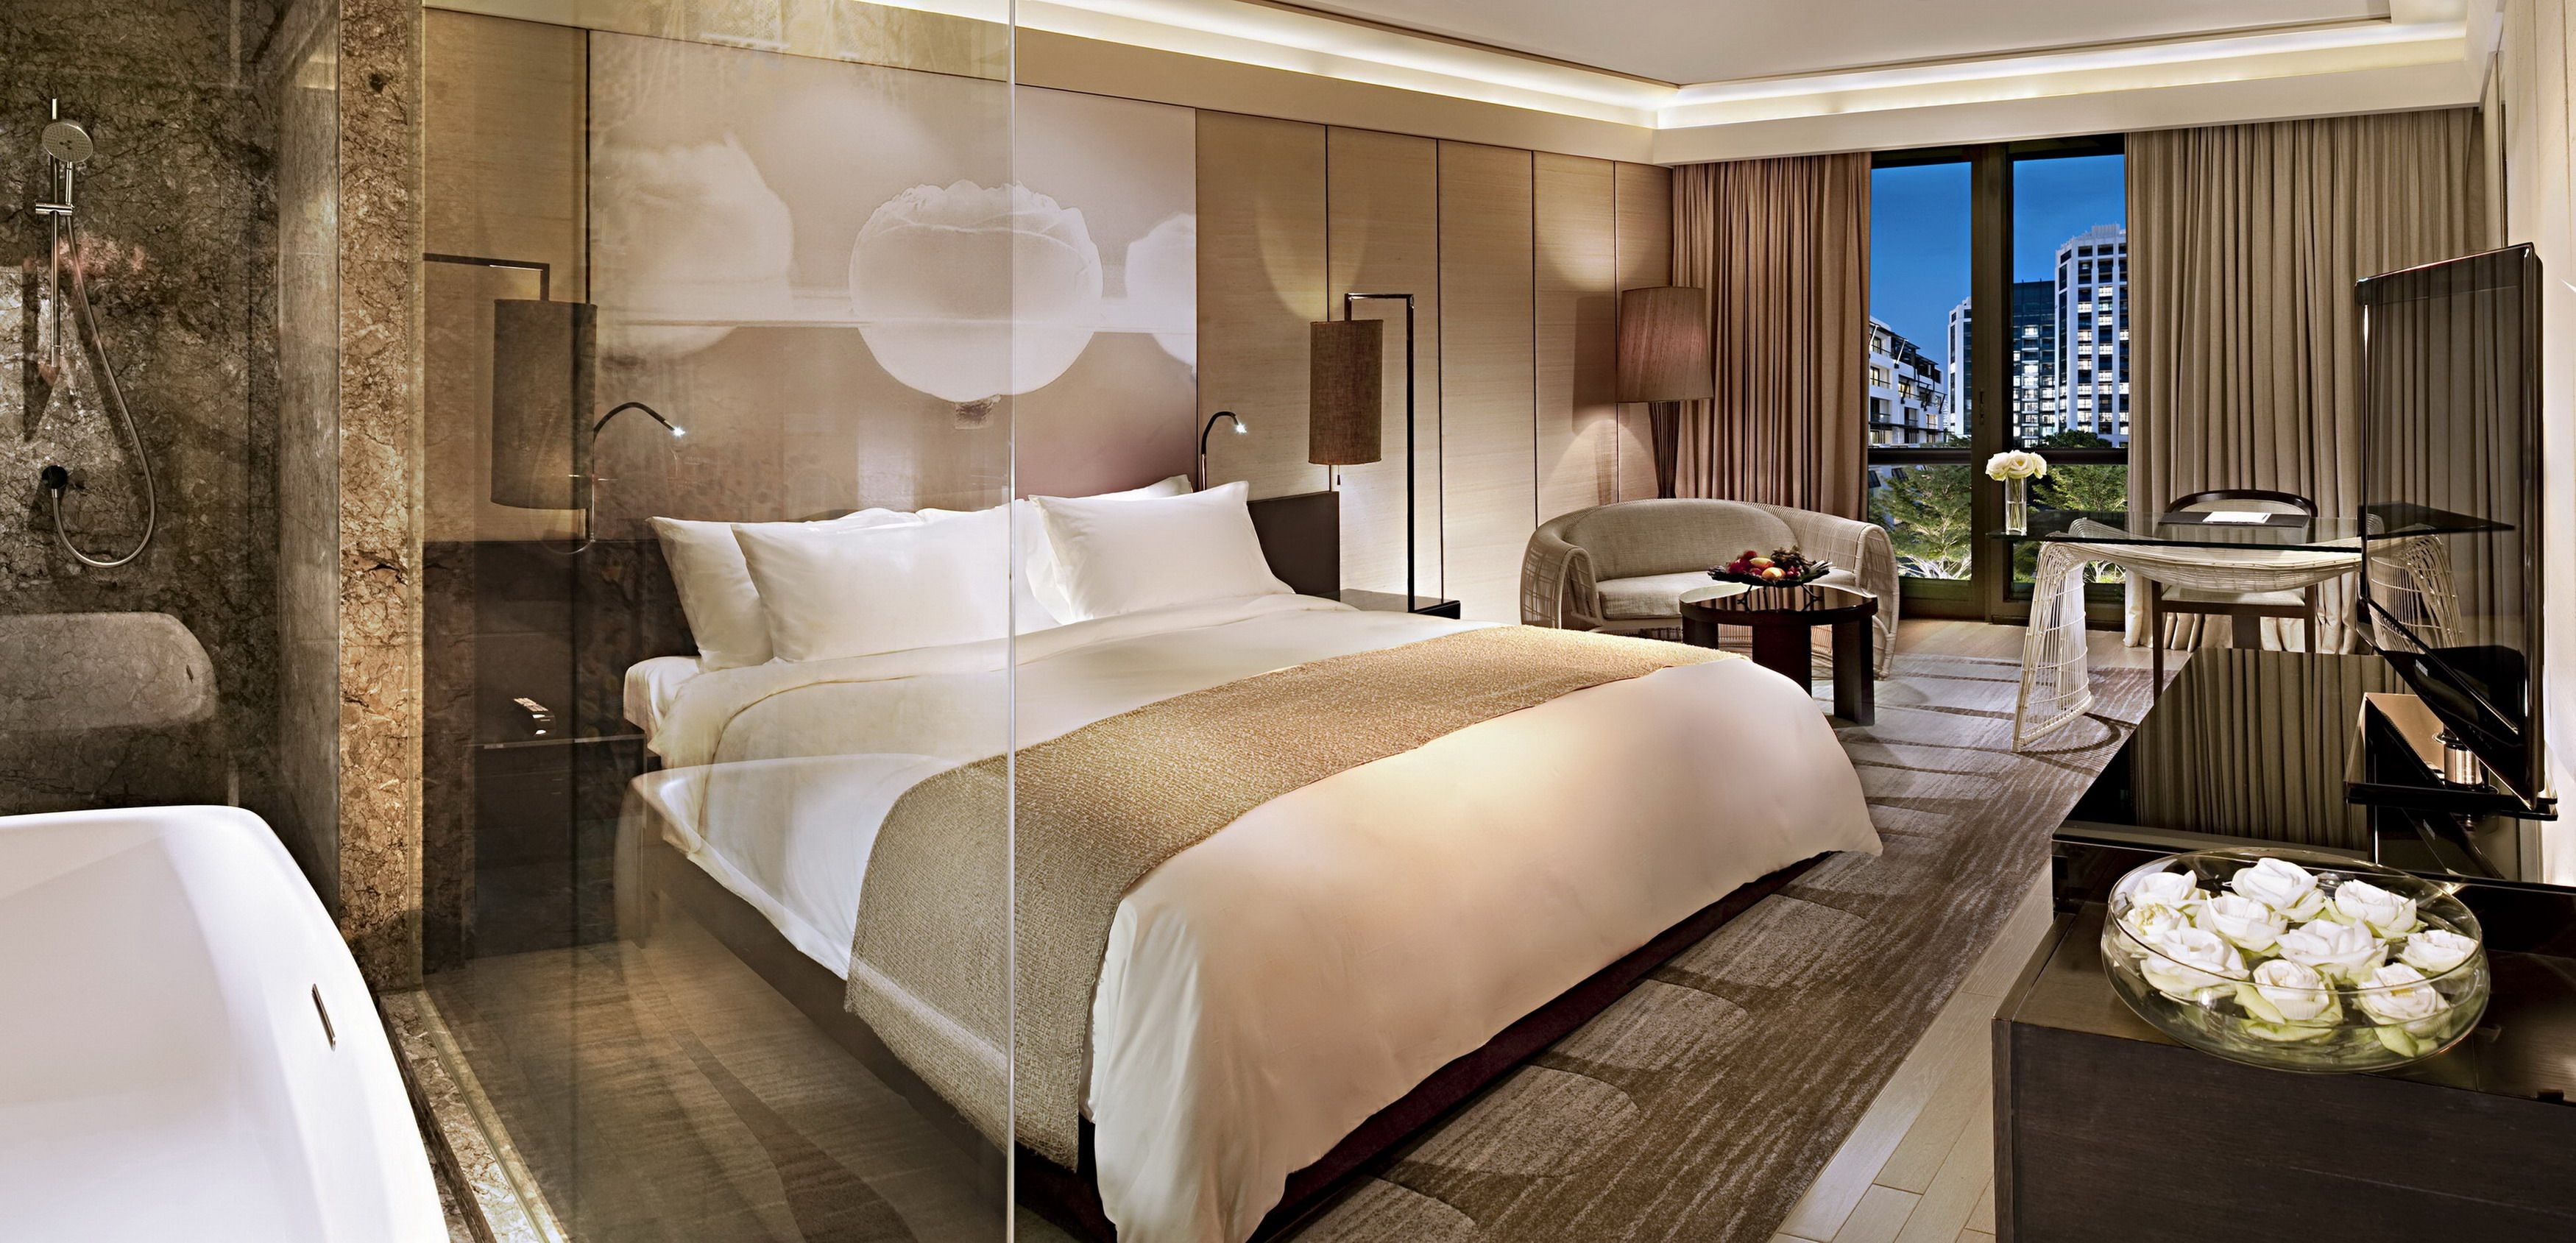 Luxury hotel rooms pictures new luxury kempinski hotel for Hotel bedroom designs